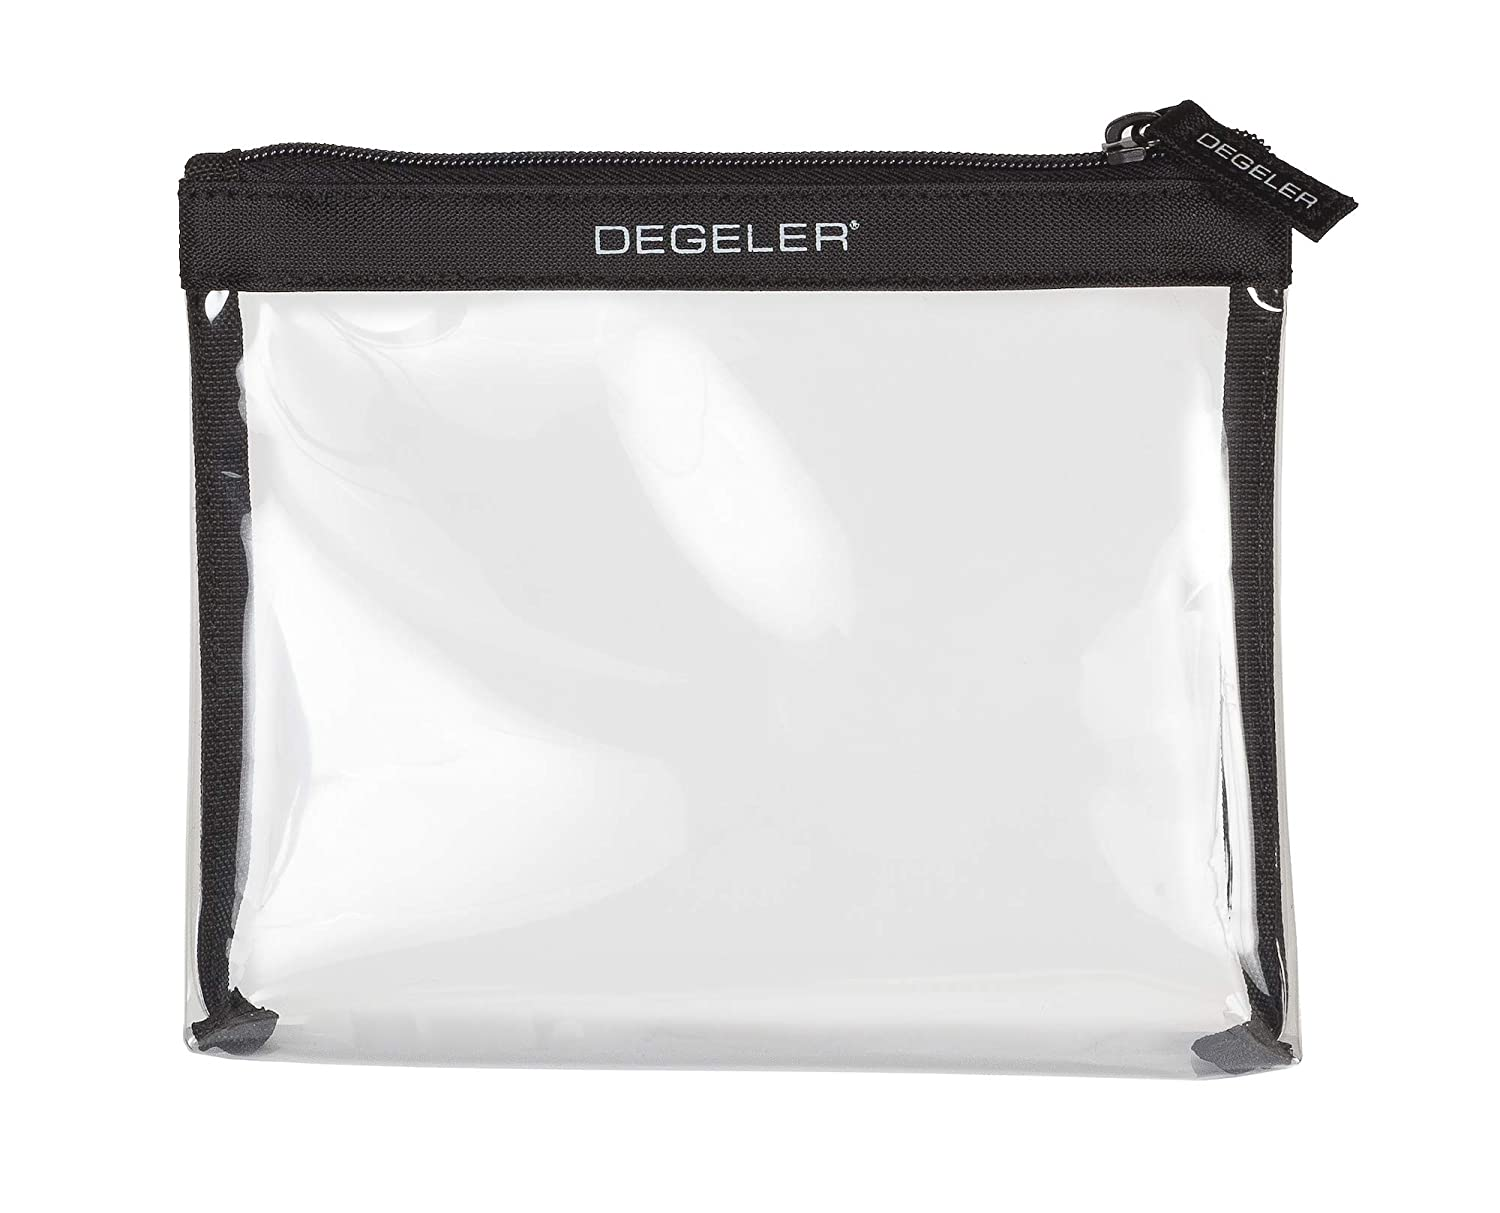 DEGELER TSA Approved Clear Travel Toiletry Bag for Carry On Luggage Airport Airline compliant Travel with Cosmetics Makeup bag for Women and Men